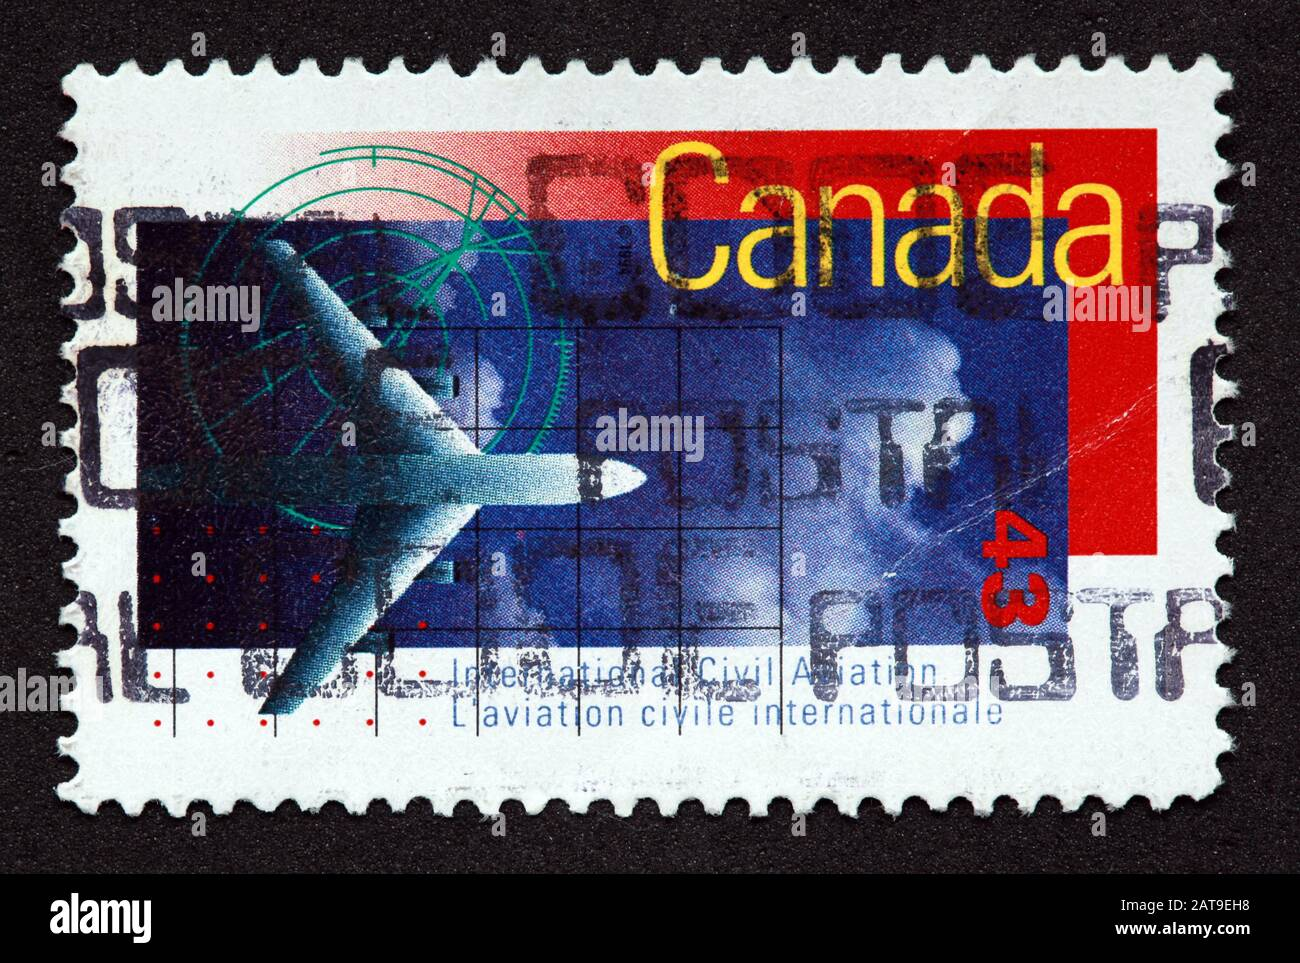 Hotpixuk,@Hotpixuk,GoTonySmith,stamp,postal,franked,frank,used stamps,used franked,used,franked stamp,from envelope,history,historic,old,poste,post office,communications,postage,sending letters,sending,parcels,Canada 43c,43c,43cent,Civil Aviation,international,plane,airplane,aircraft,postmark,Canadian